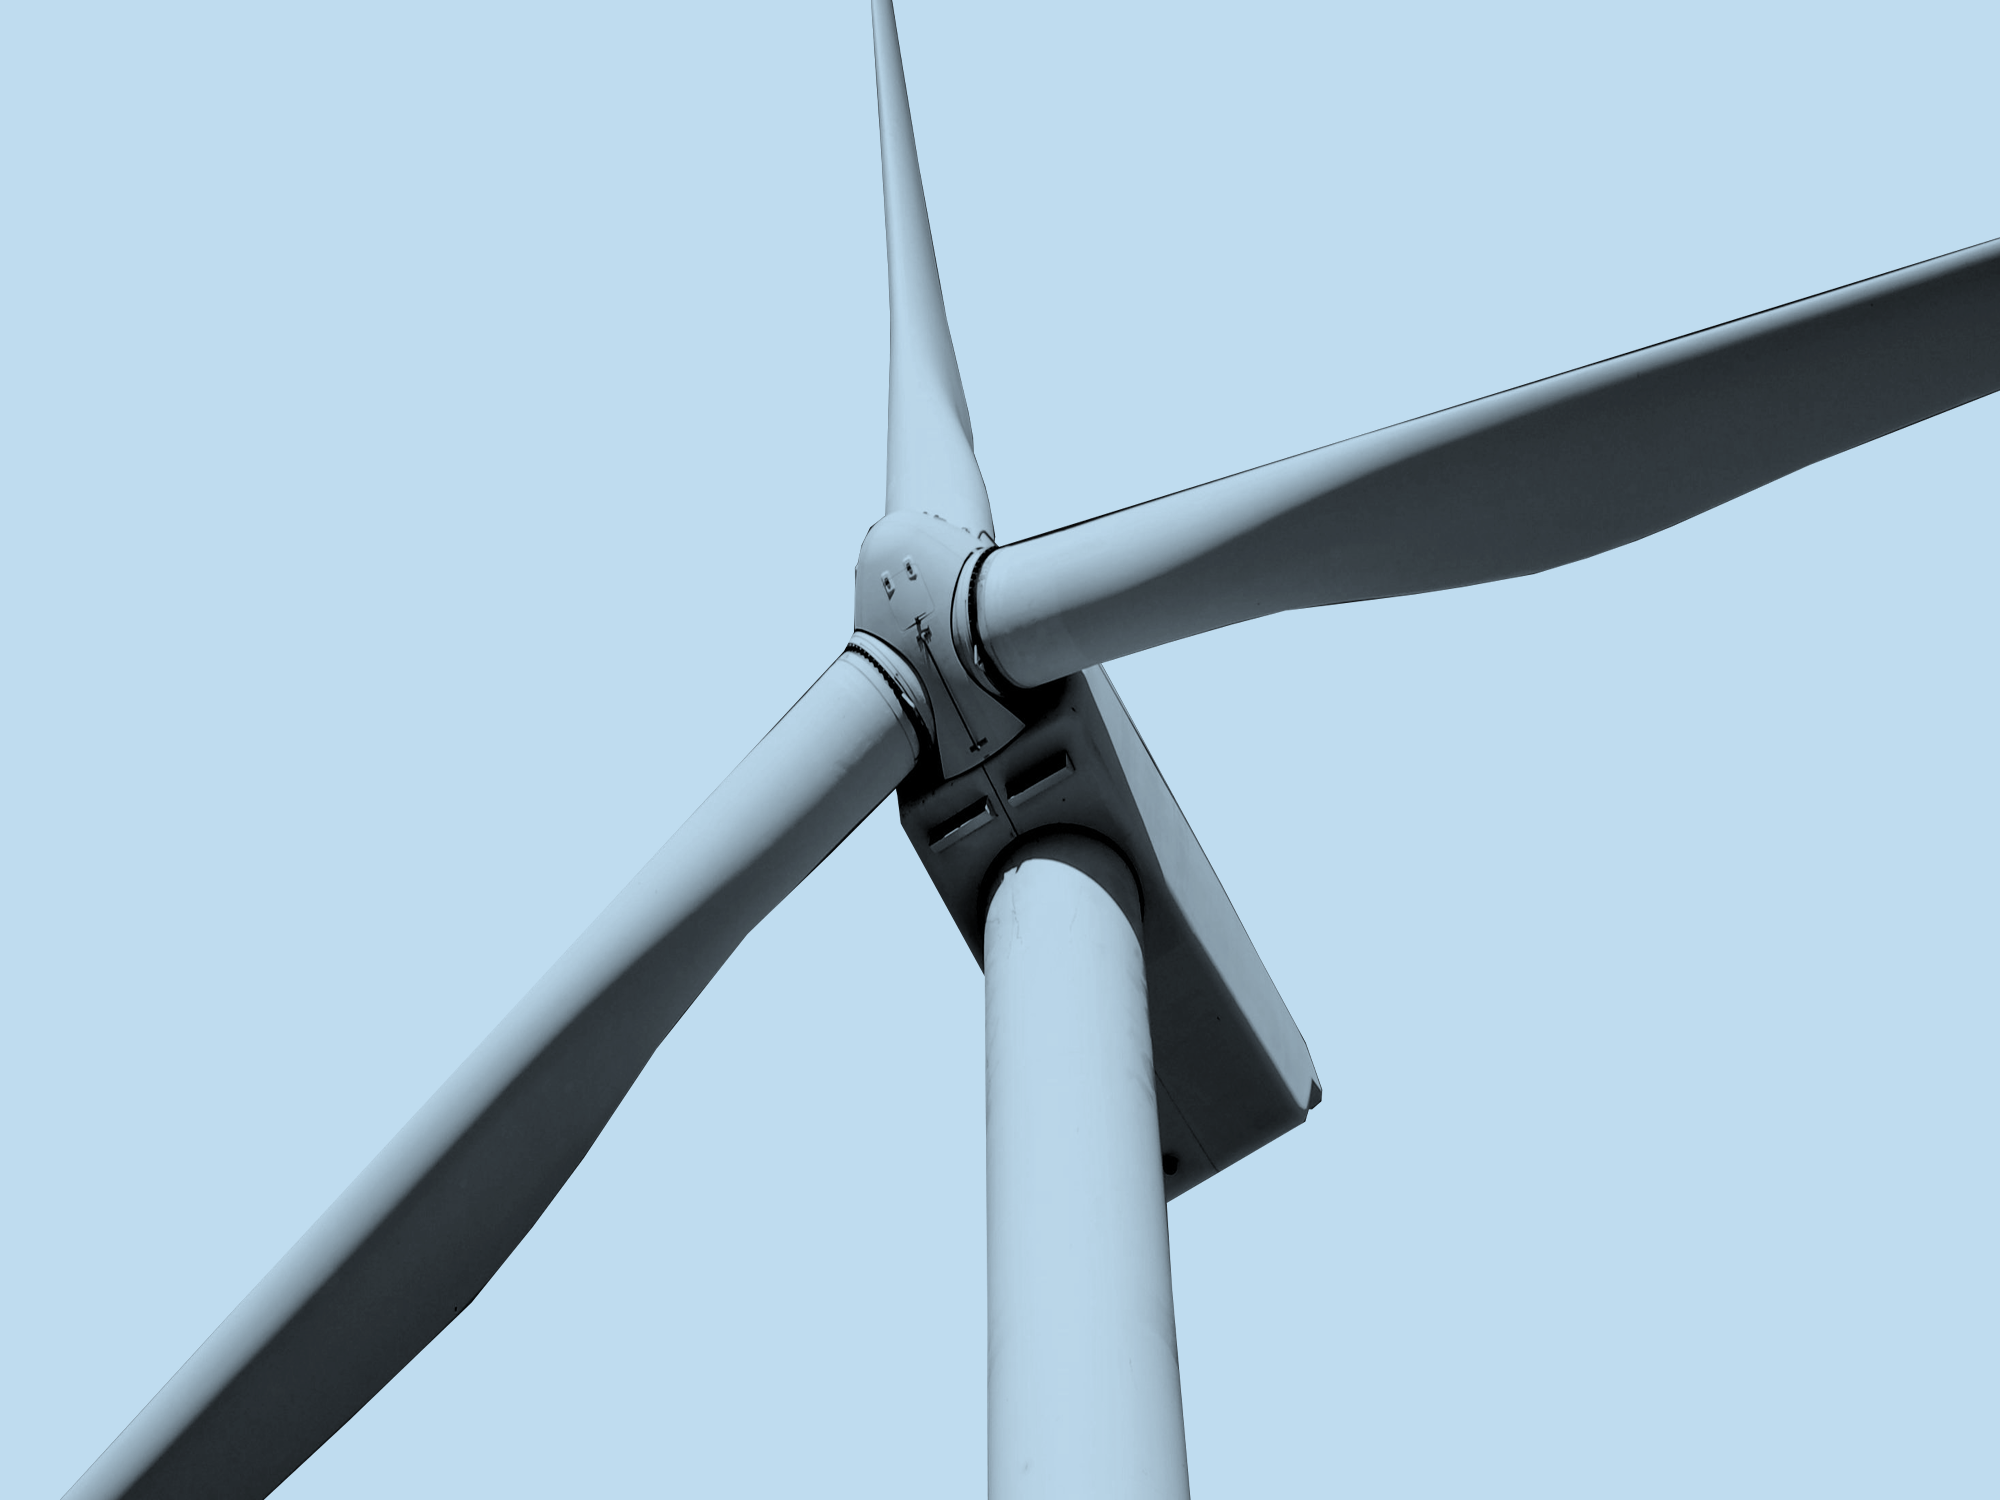 OUR ELECTRICITY IS 100% RENEWABLE. BUT IT'S COMPLICATED.